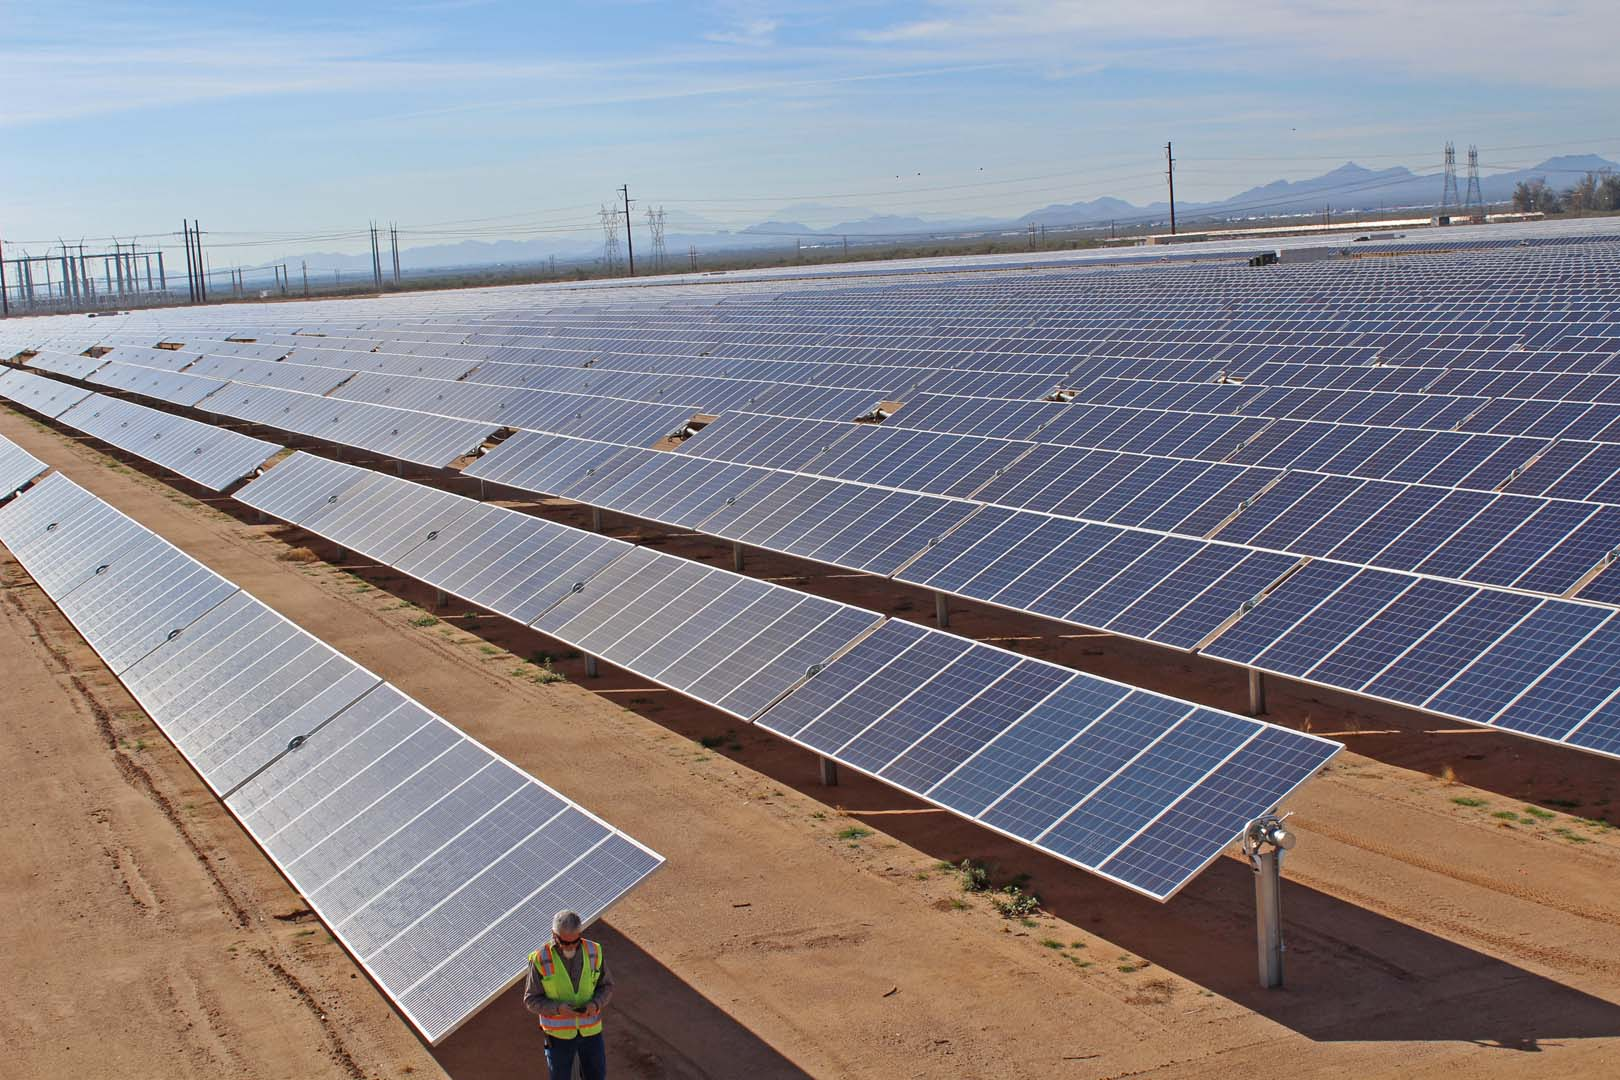 APS developed and will own and operate the 40MW PV plant, located 30 miles south of Casa Grande in Red Rock, Arizona. Source: Business Wire